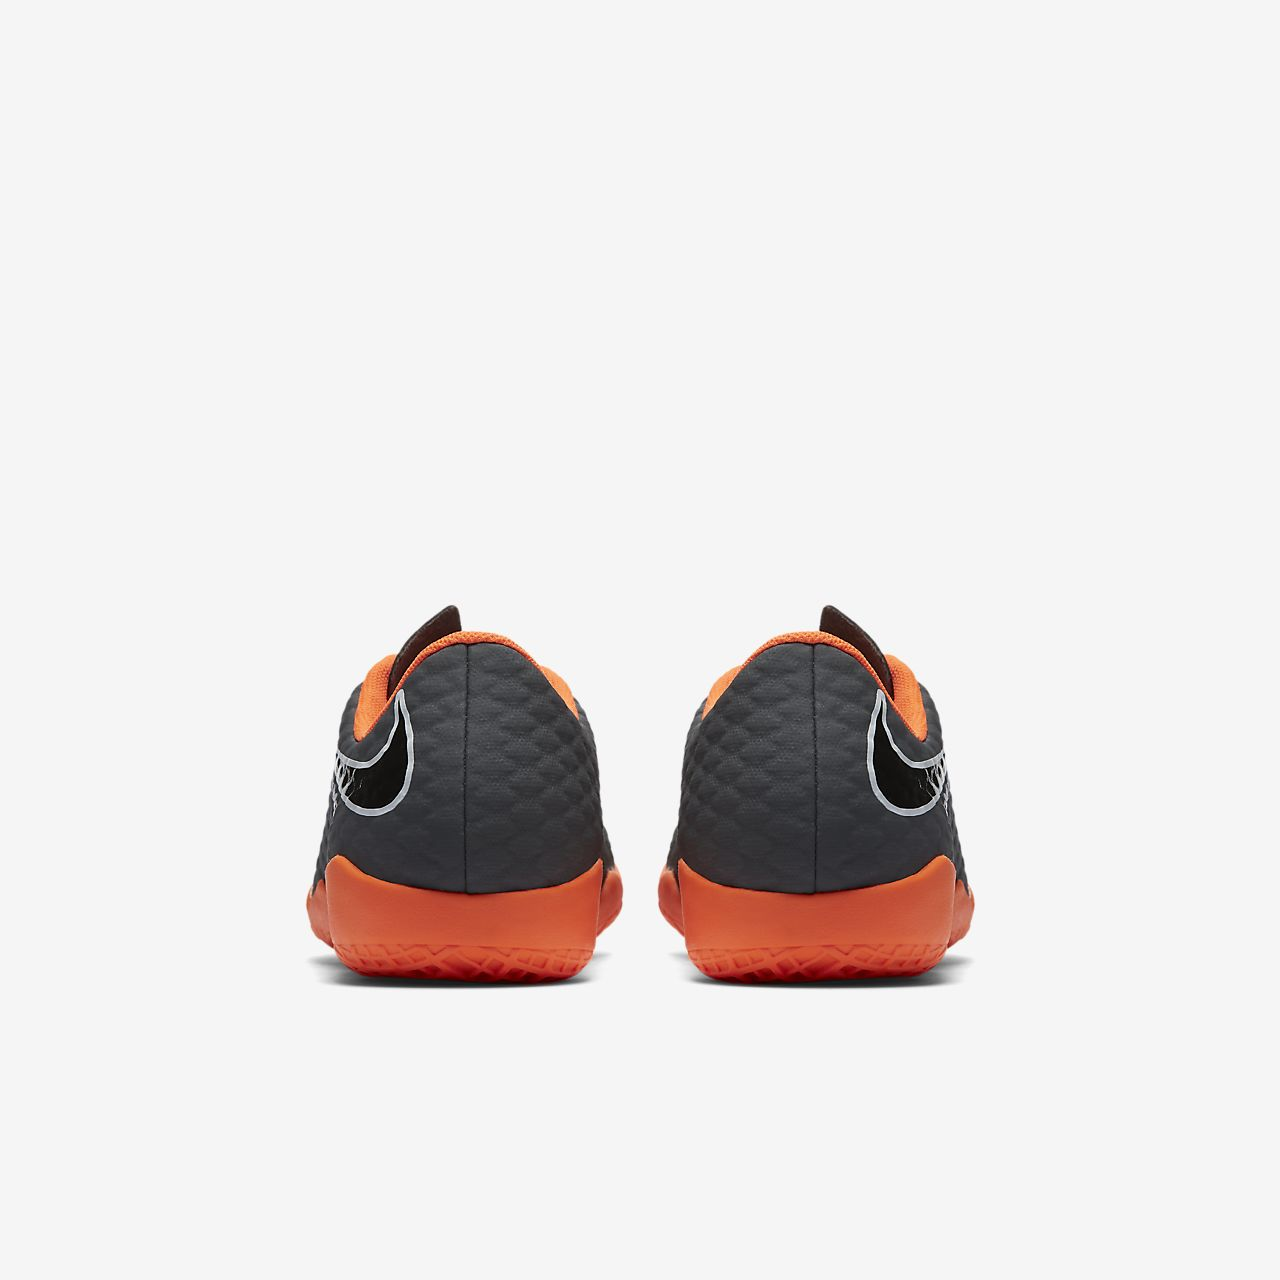 ... Nike Jr. Hypervenom PhantomX Academy III IC Little/Big Kids' Indoor /Court